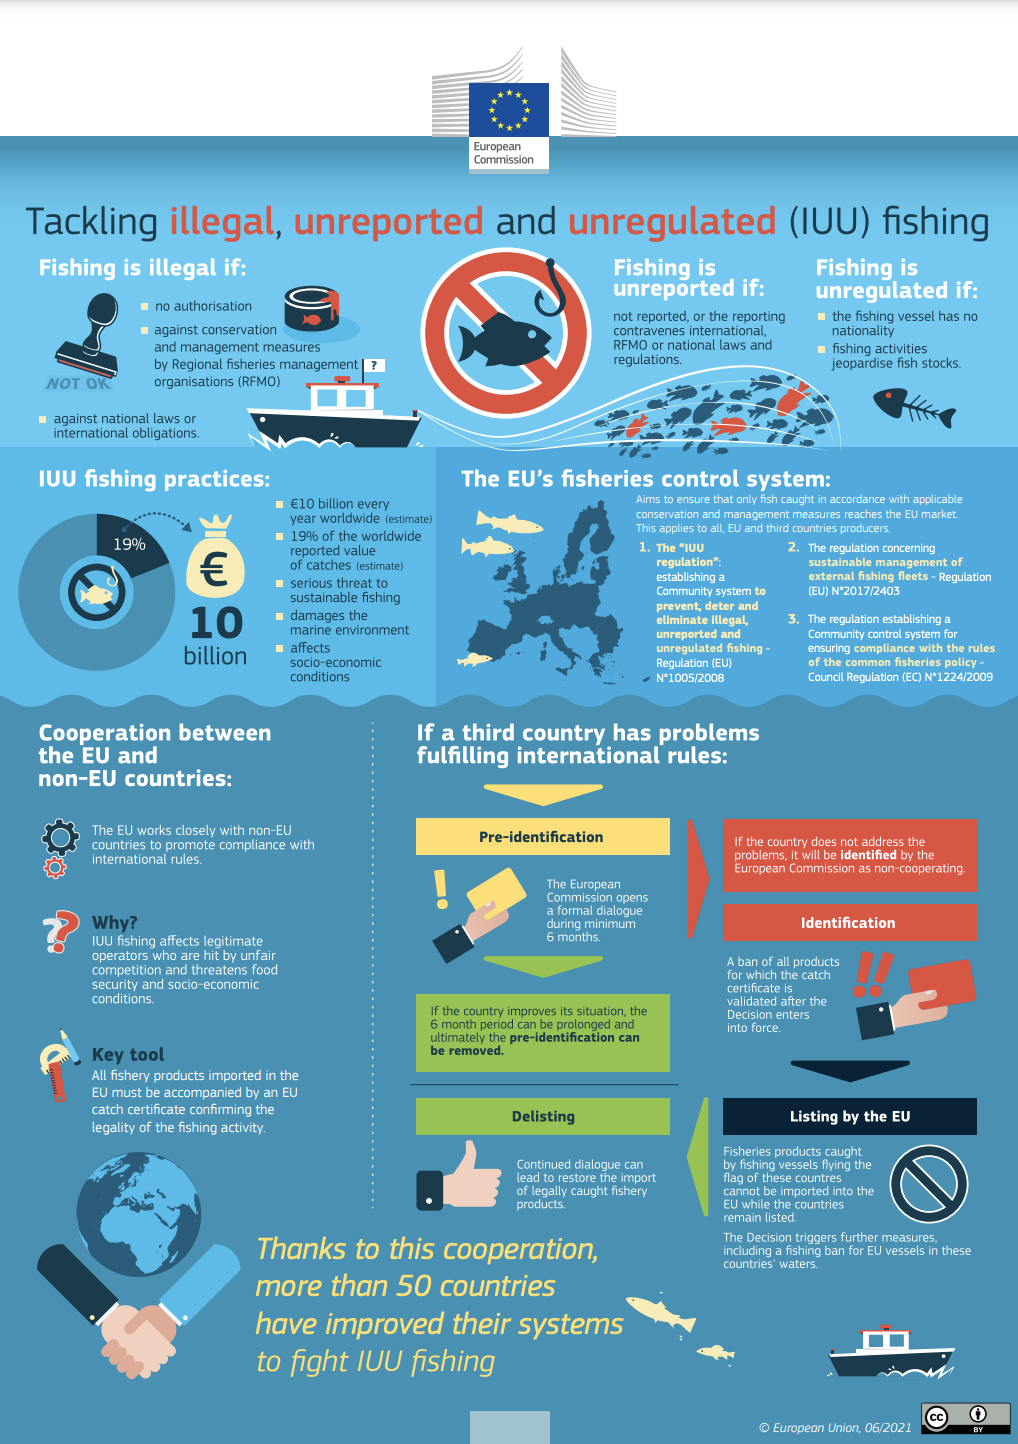 Tackle Illegal, Unreported and Unregulated (IUU) Fishing